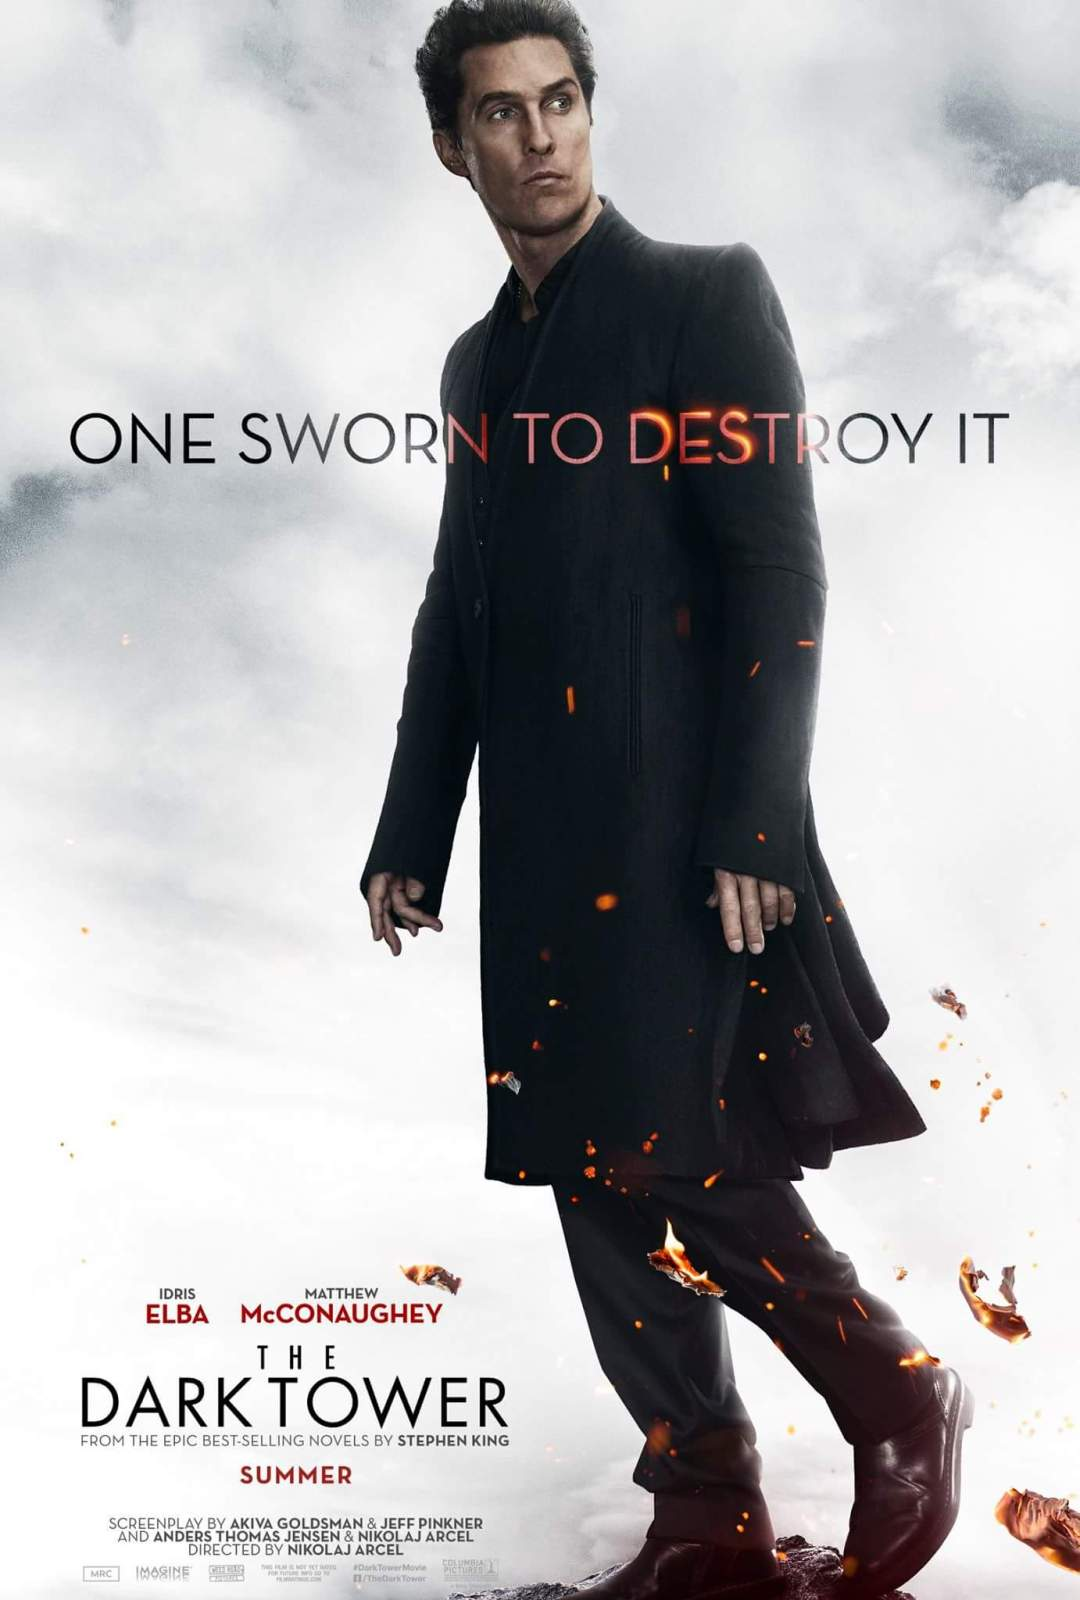 dark tower character poster 1